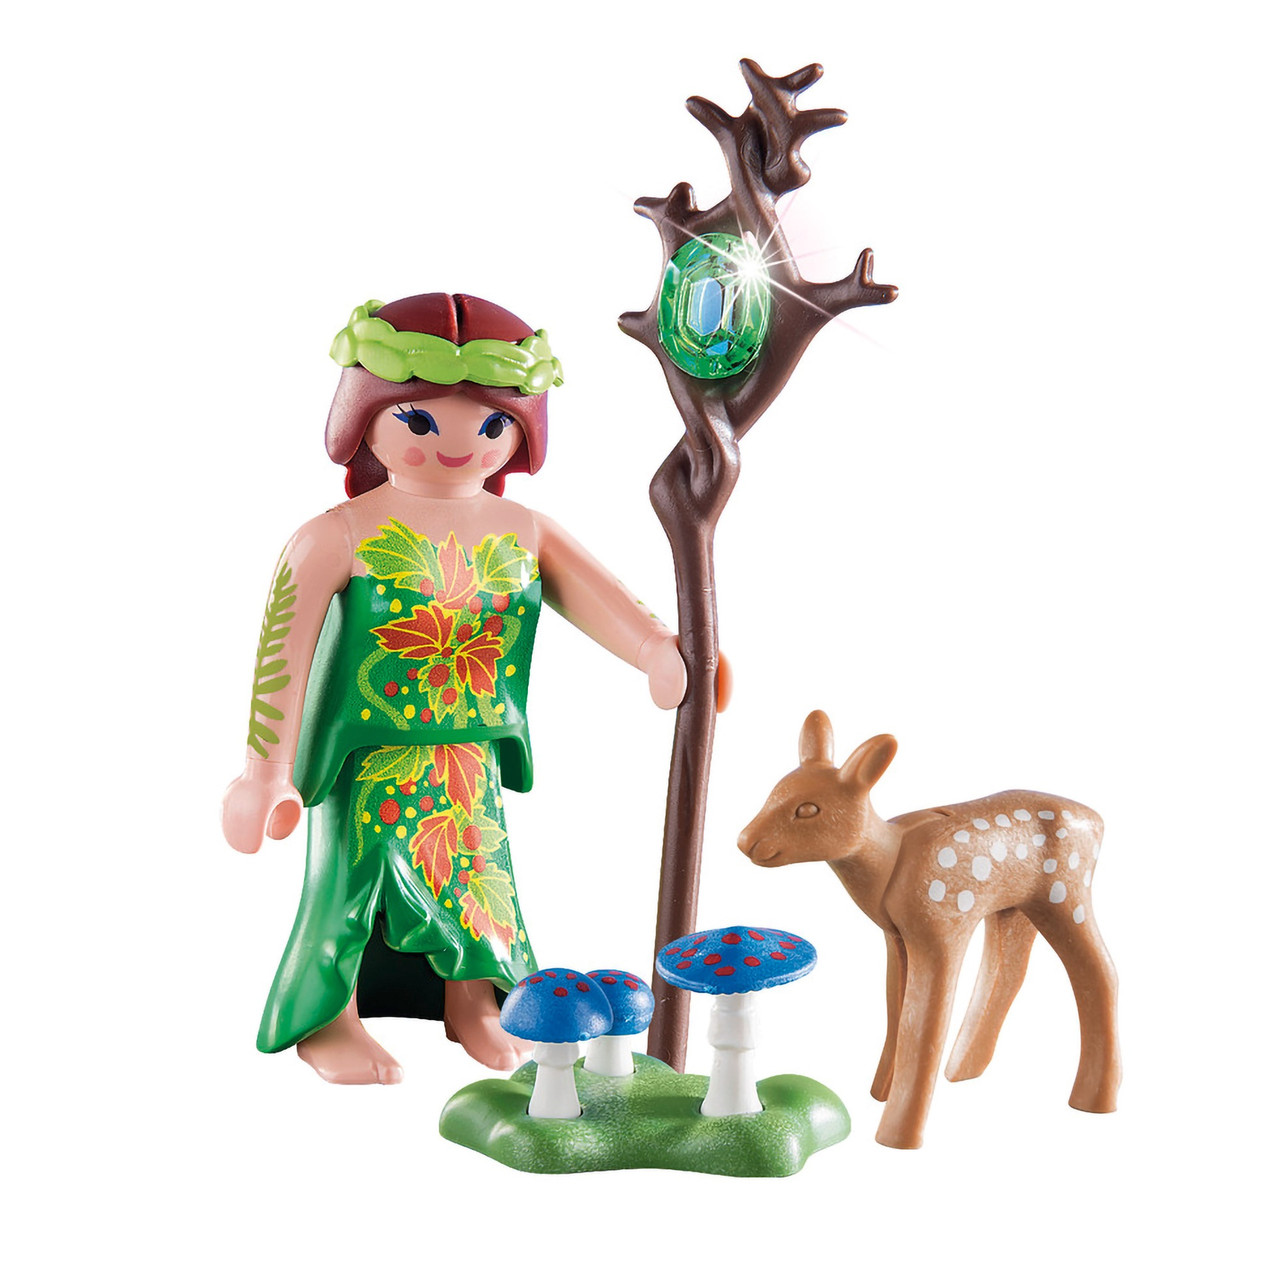 PLAYMOBIL FAMILY WITH DEER